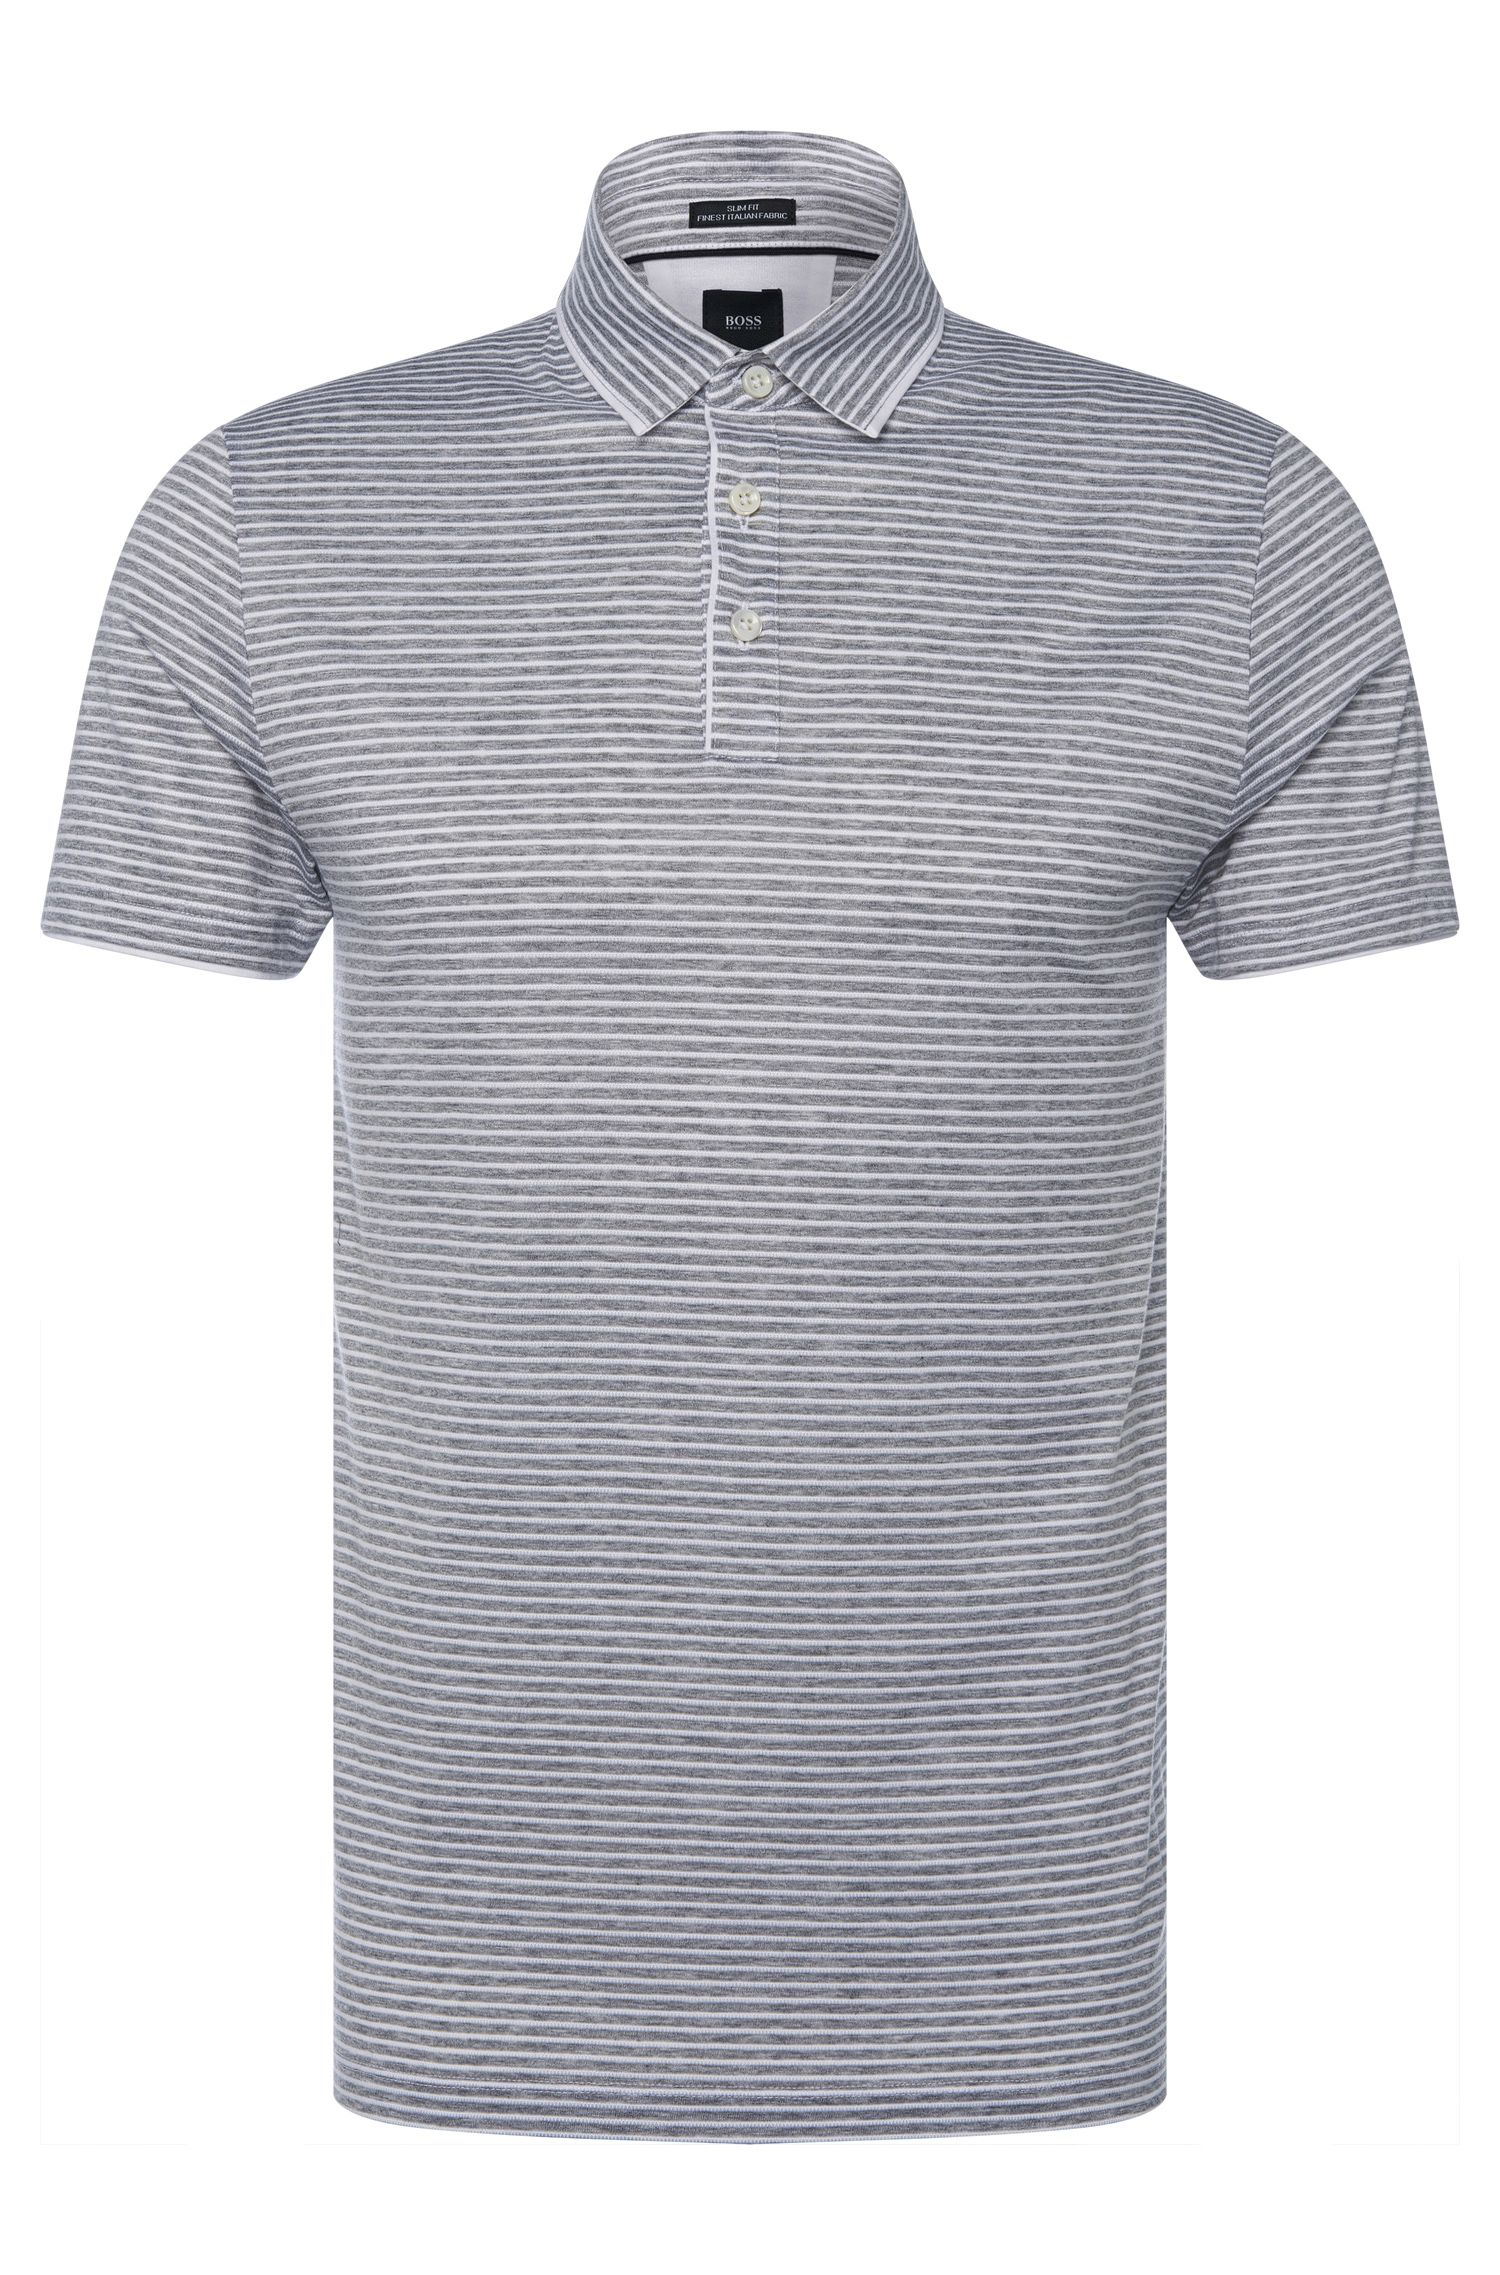 Gestreiftes Slim-Fit Tailored Poloshirt aus Baumwolle: 'T-Pryde 27'